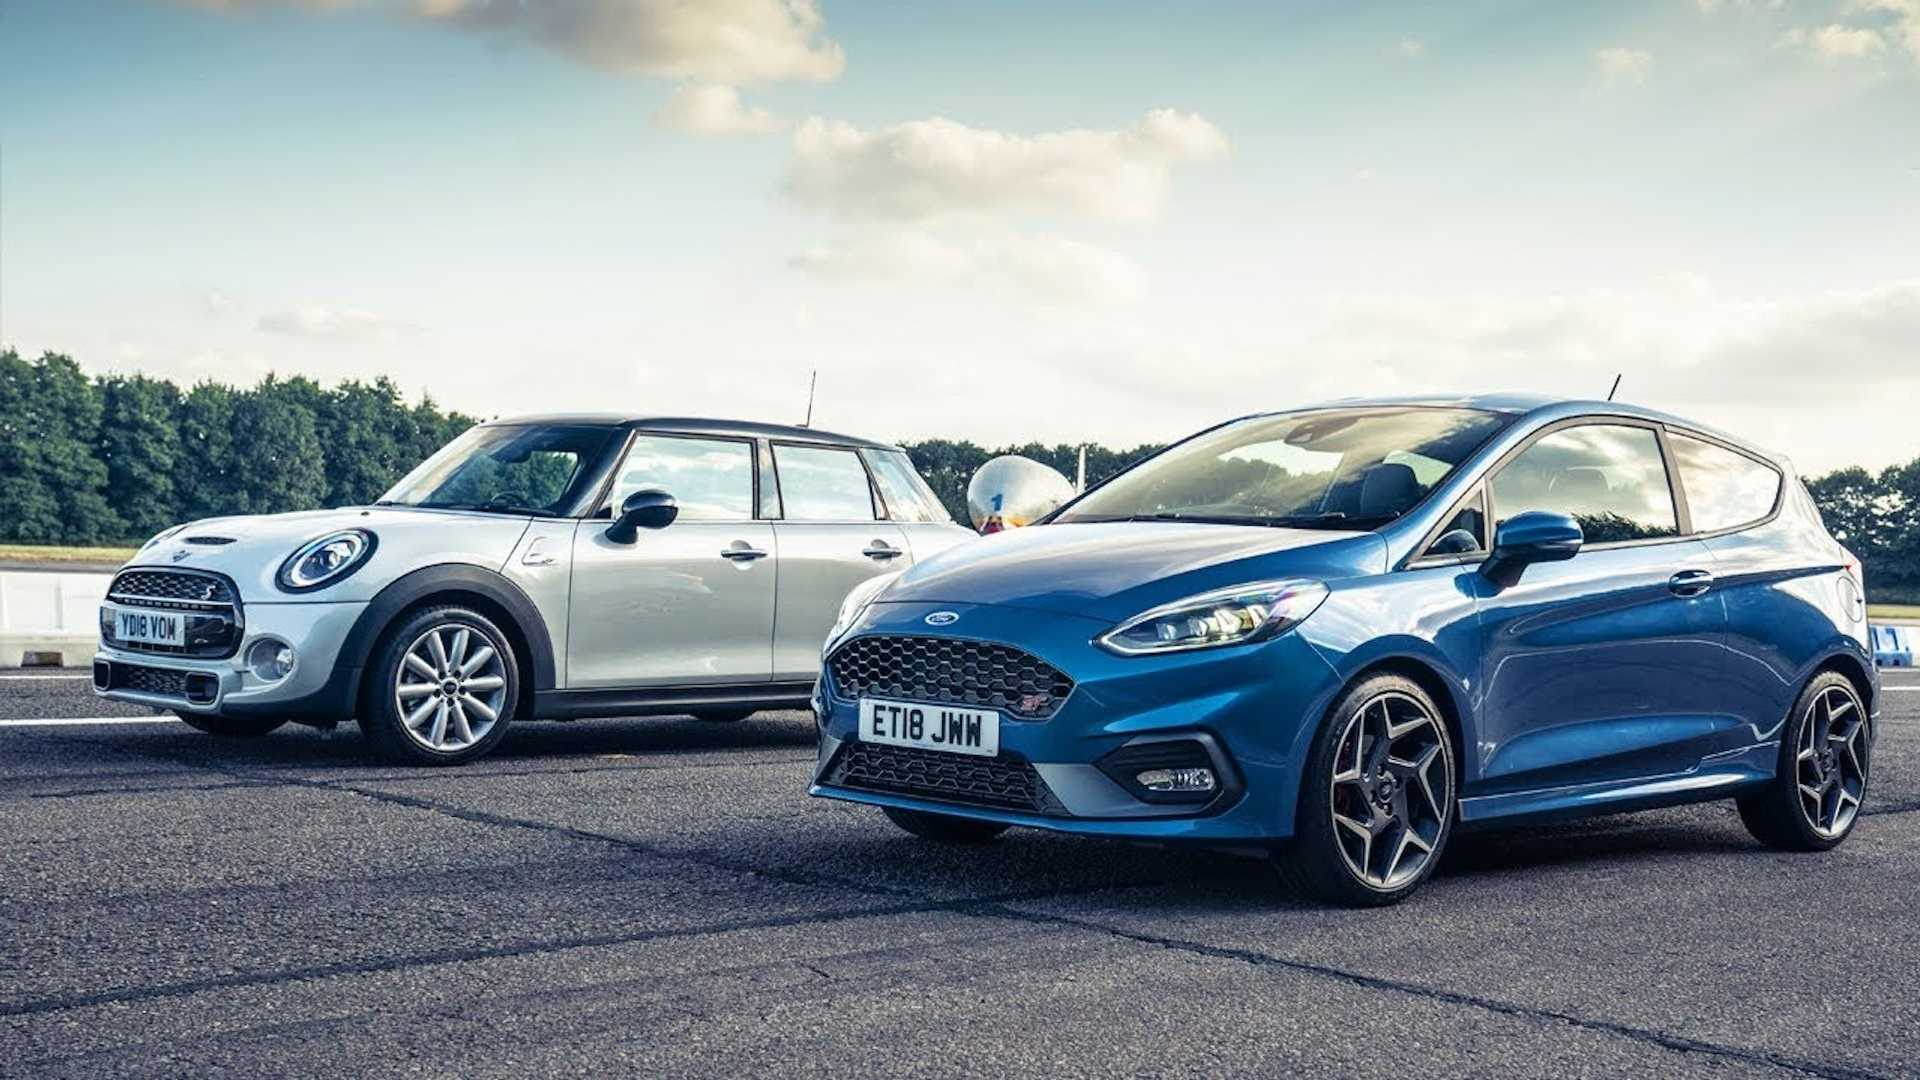 Mini Cooper S Drag Races Ford Fiesta St With Obvious Results